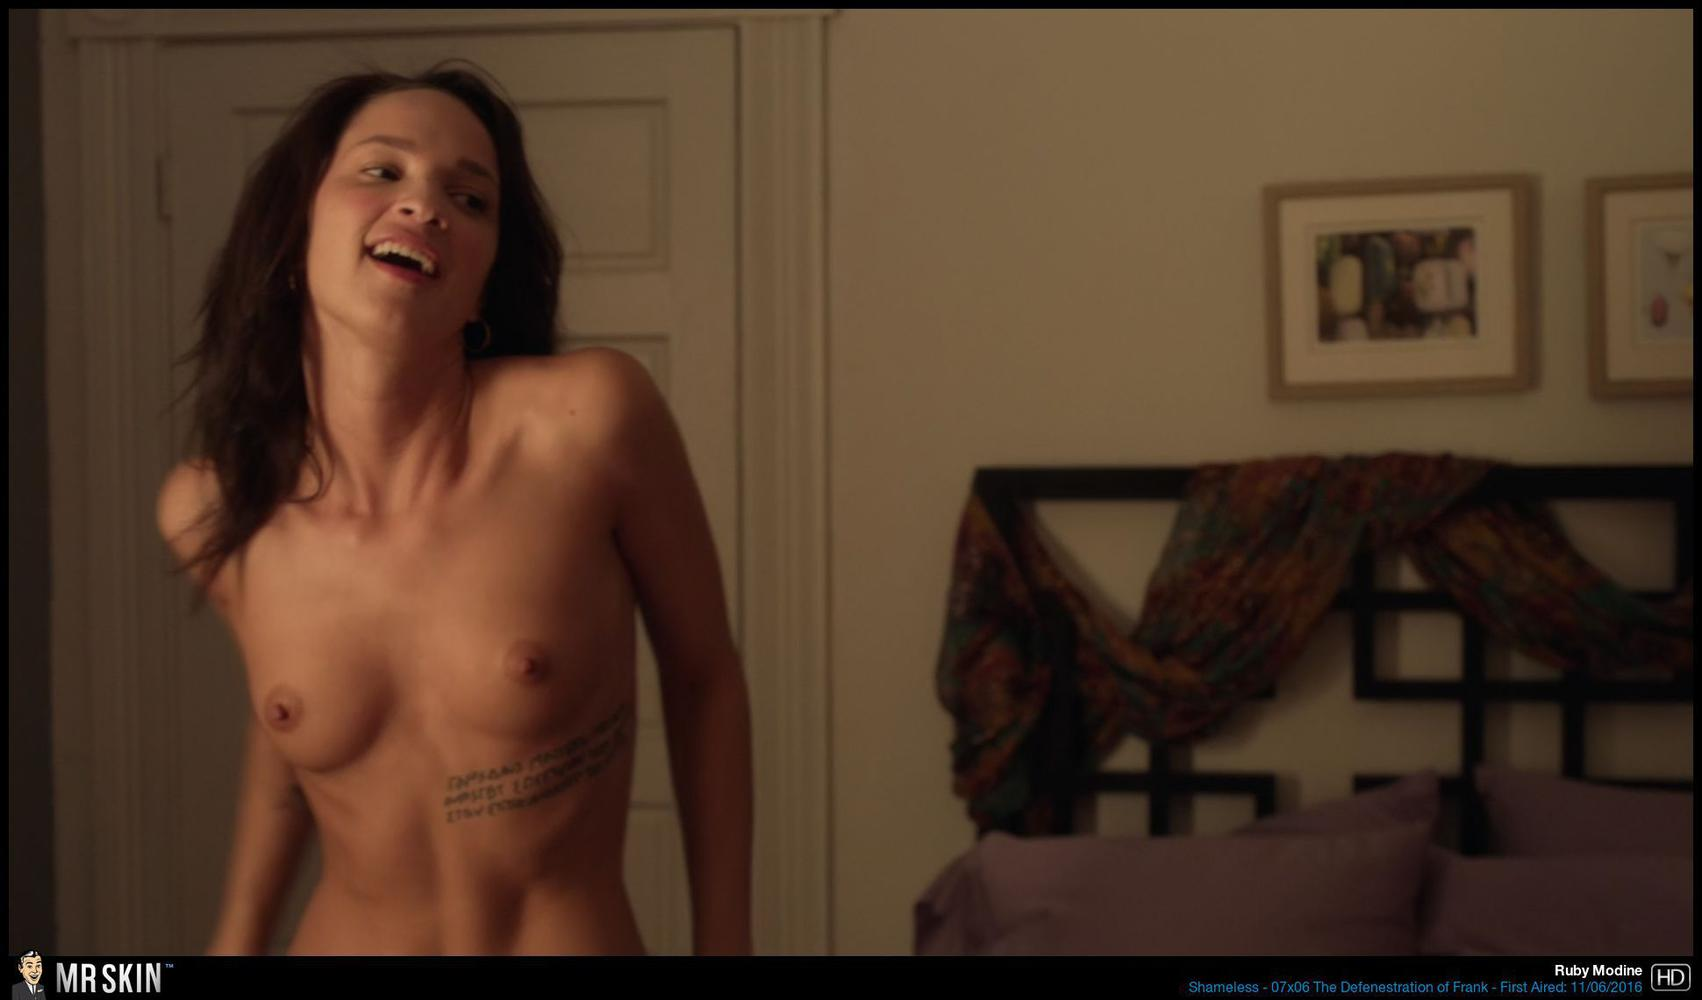 Alyssa Leblanc Nude skincoming on dvd & blu-ray: shameless s7, the little hours, and